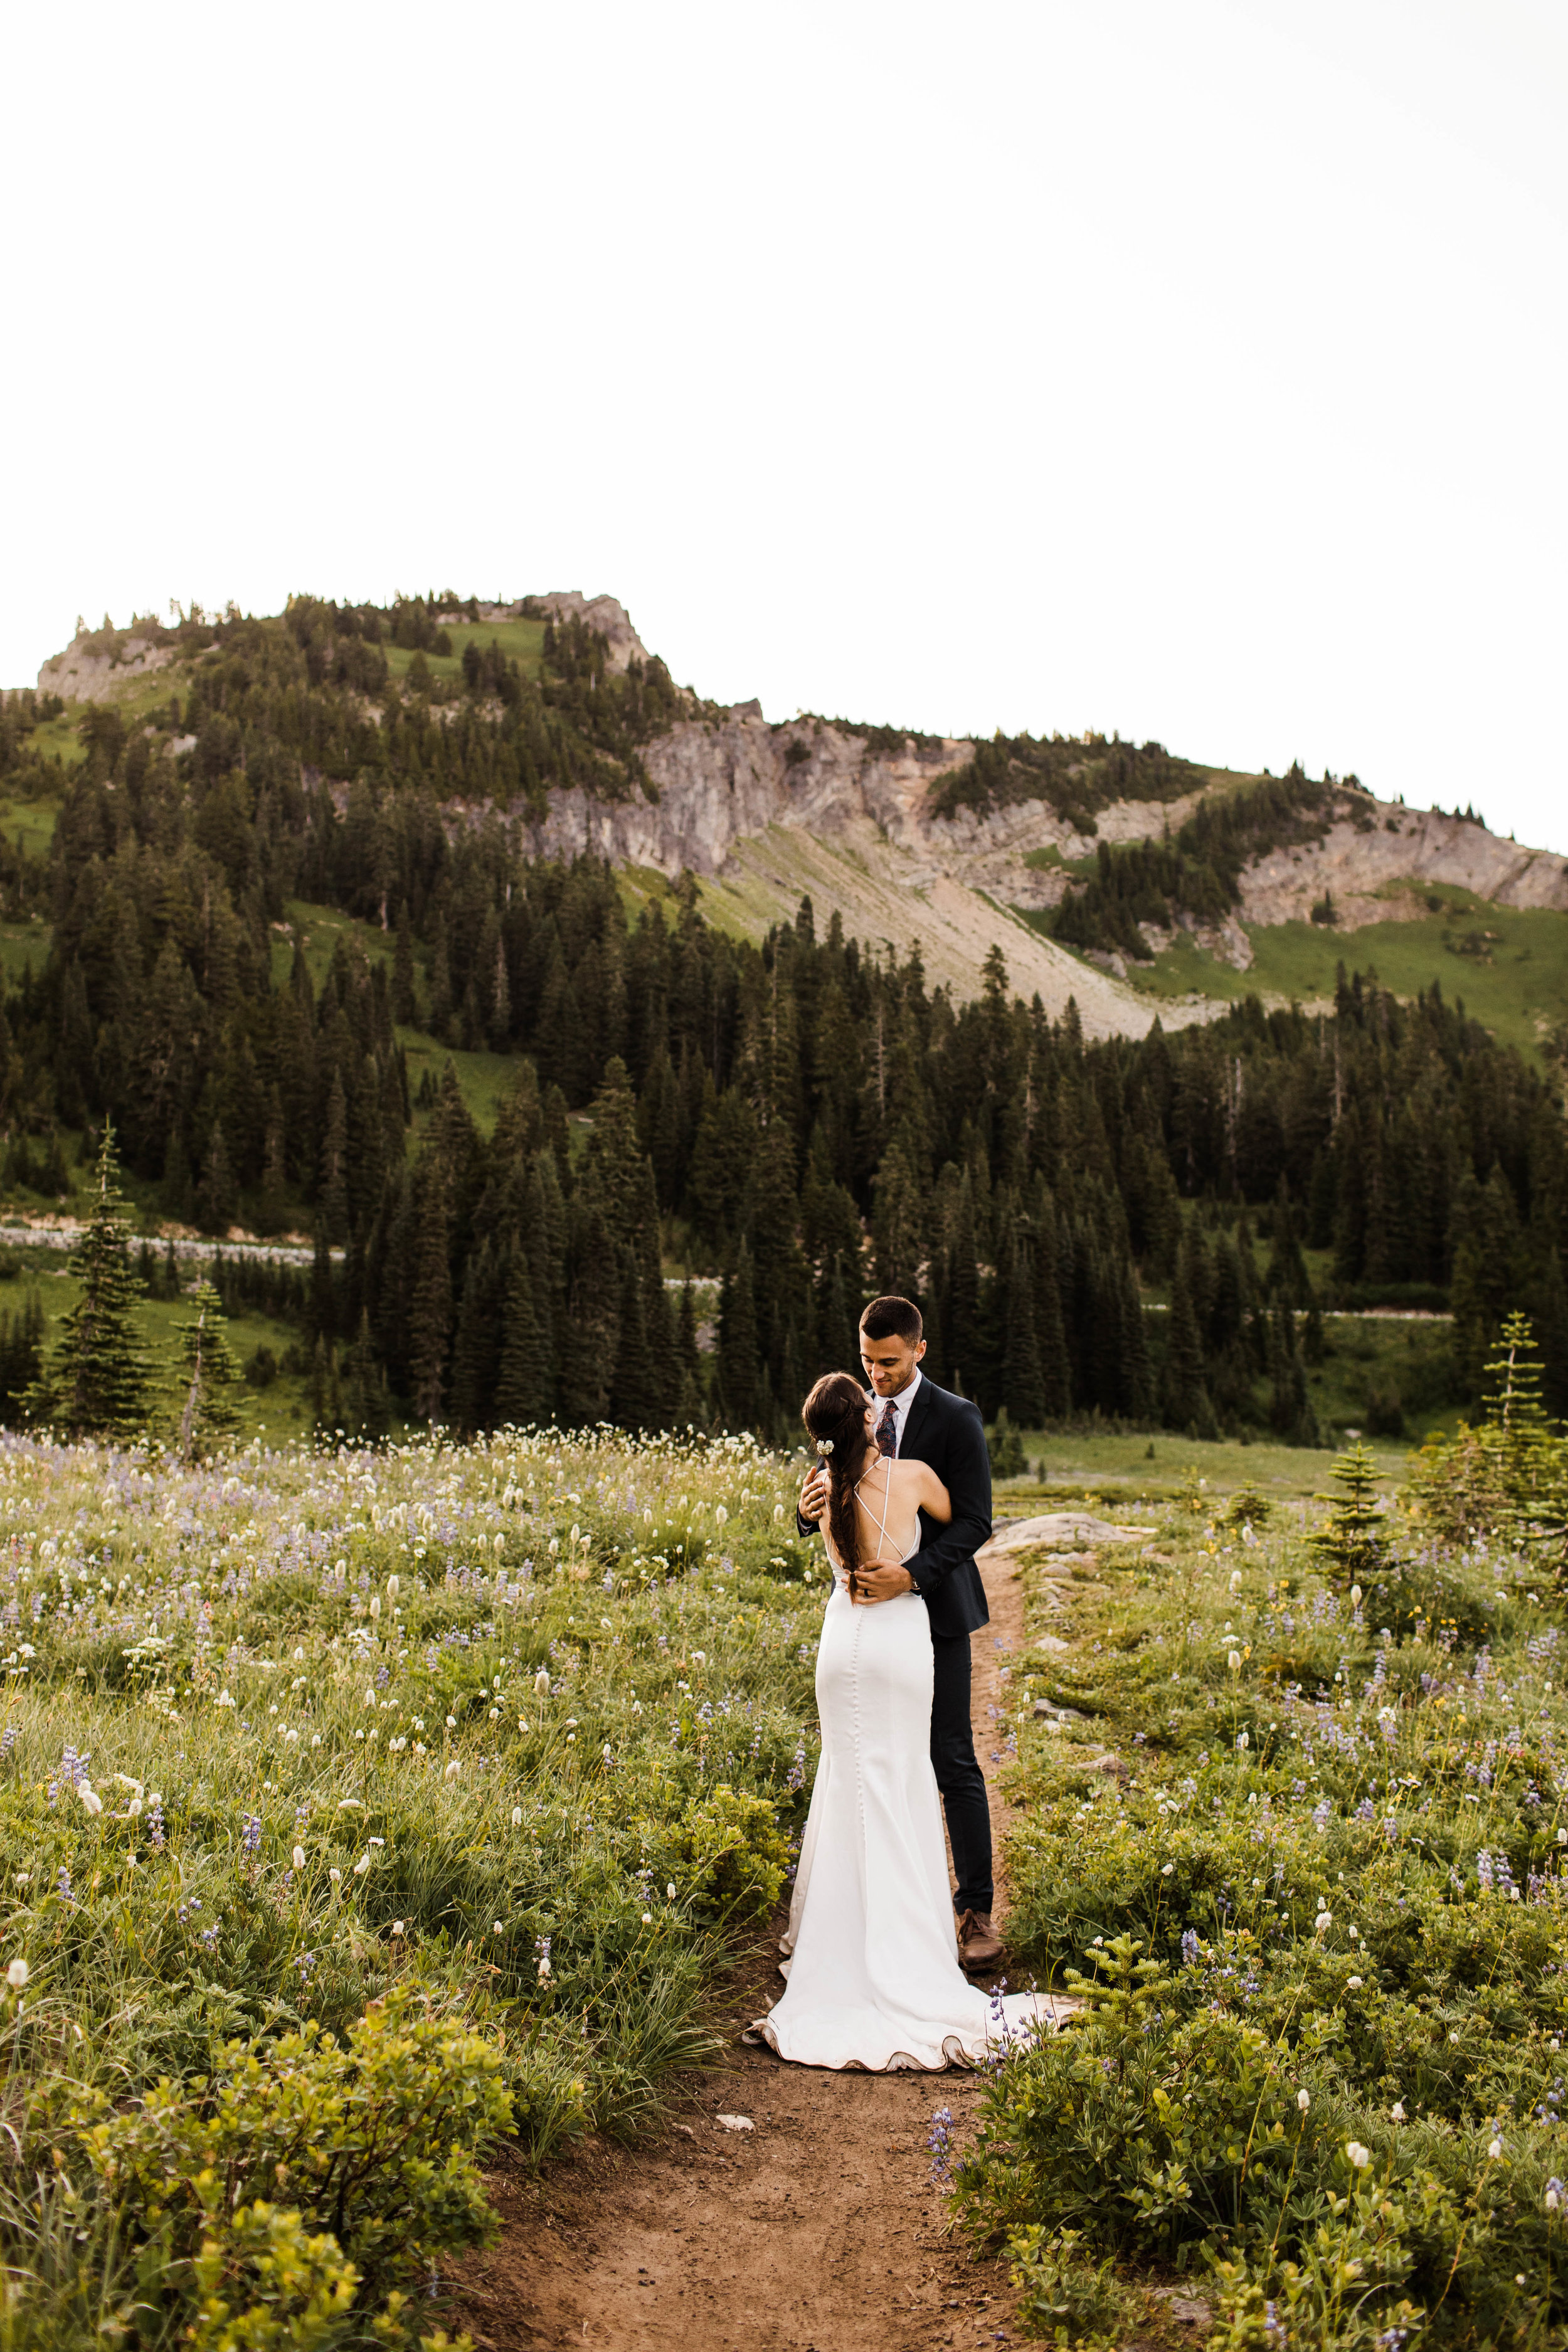 couple giggling during their Mount Rainier National Park elopement in Washington state | Seattle elopement and adventure wedding photographers